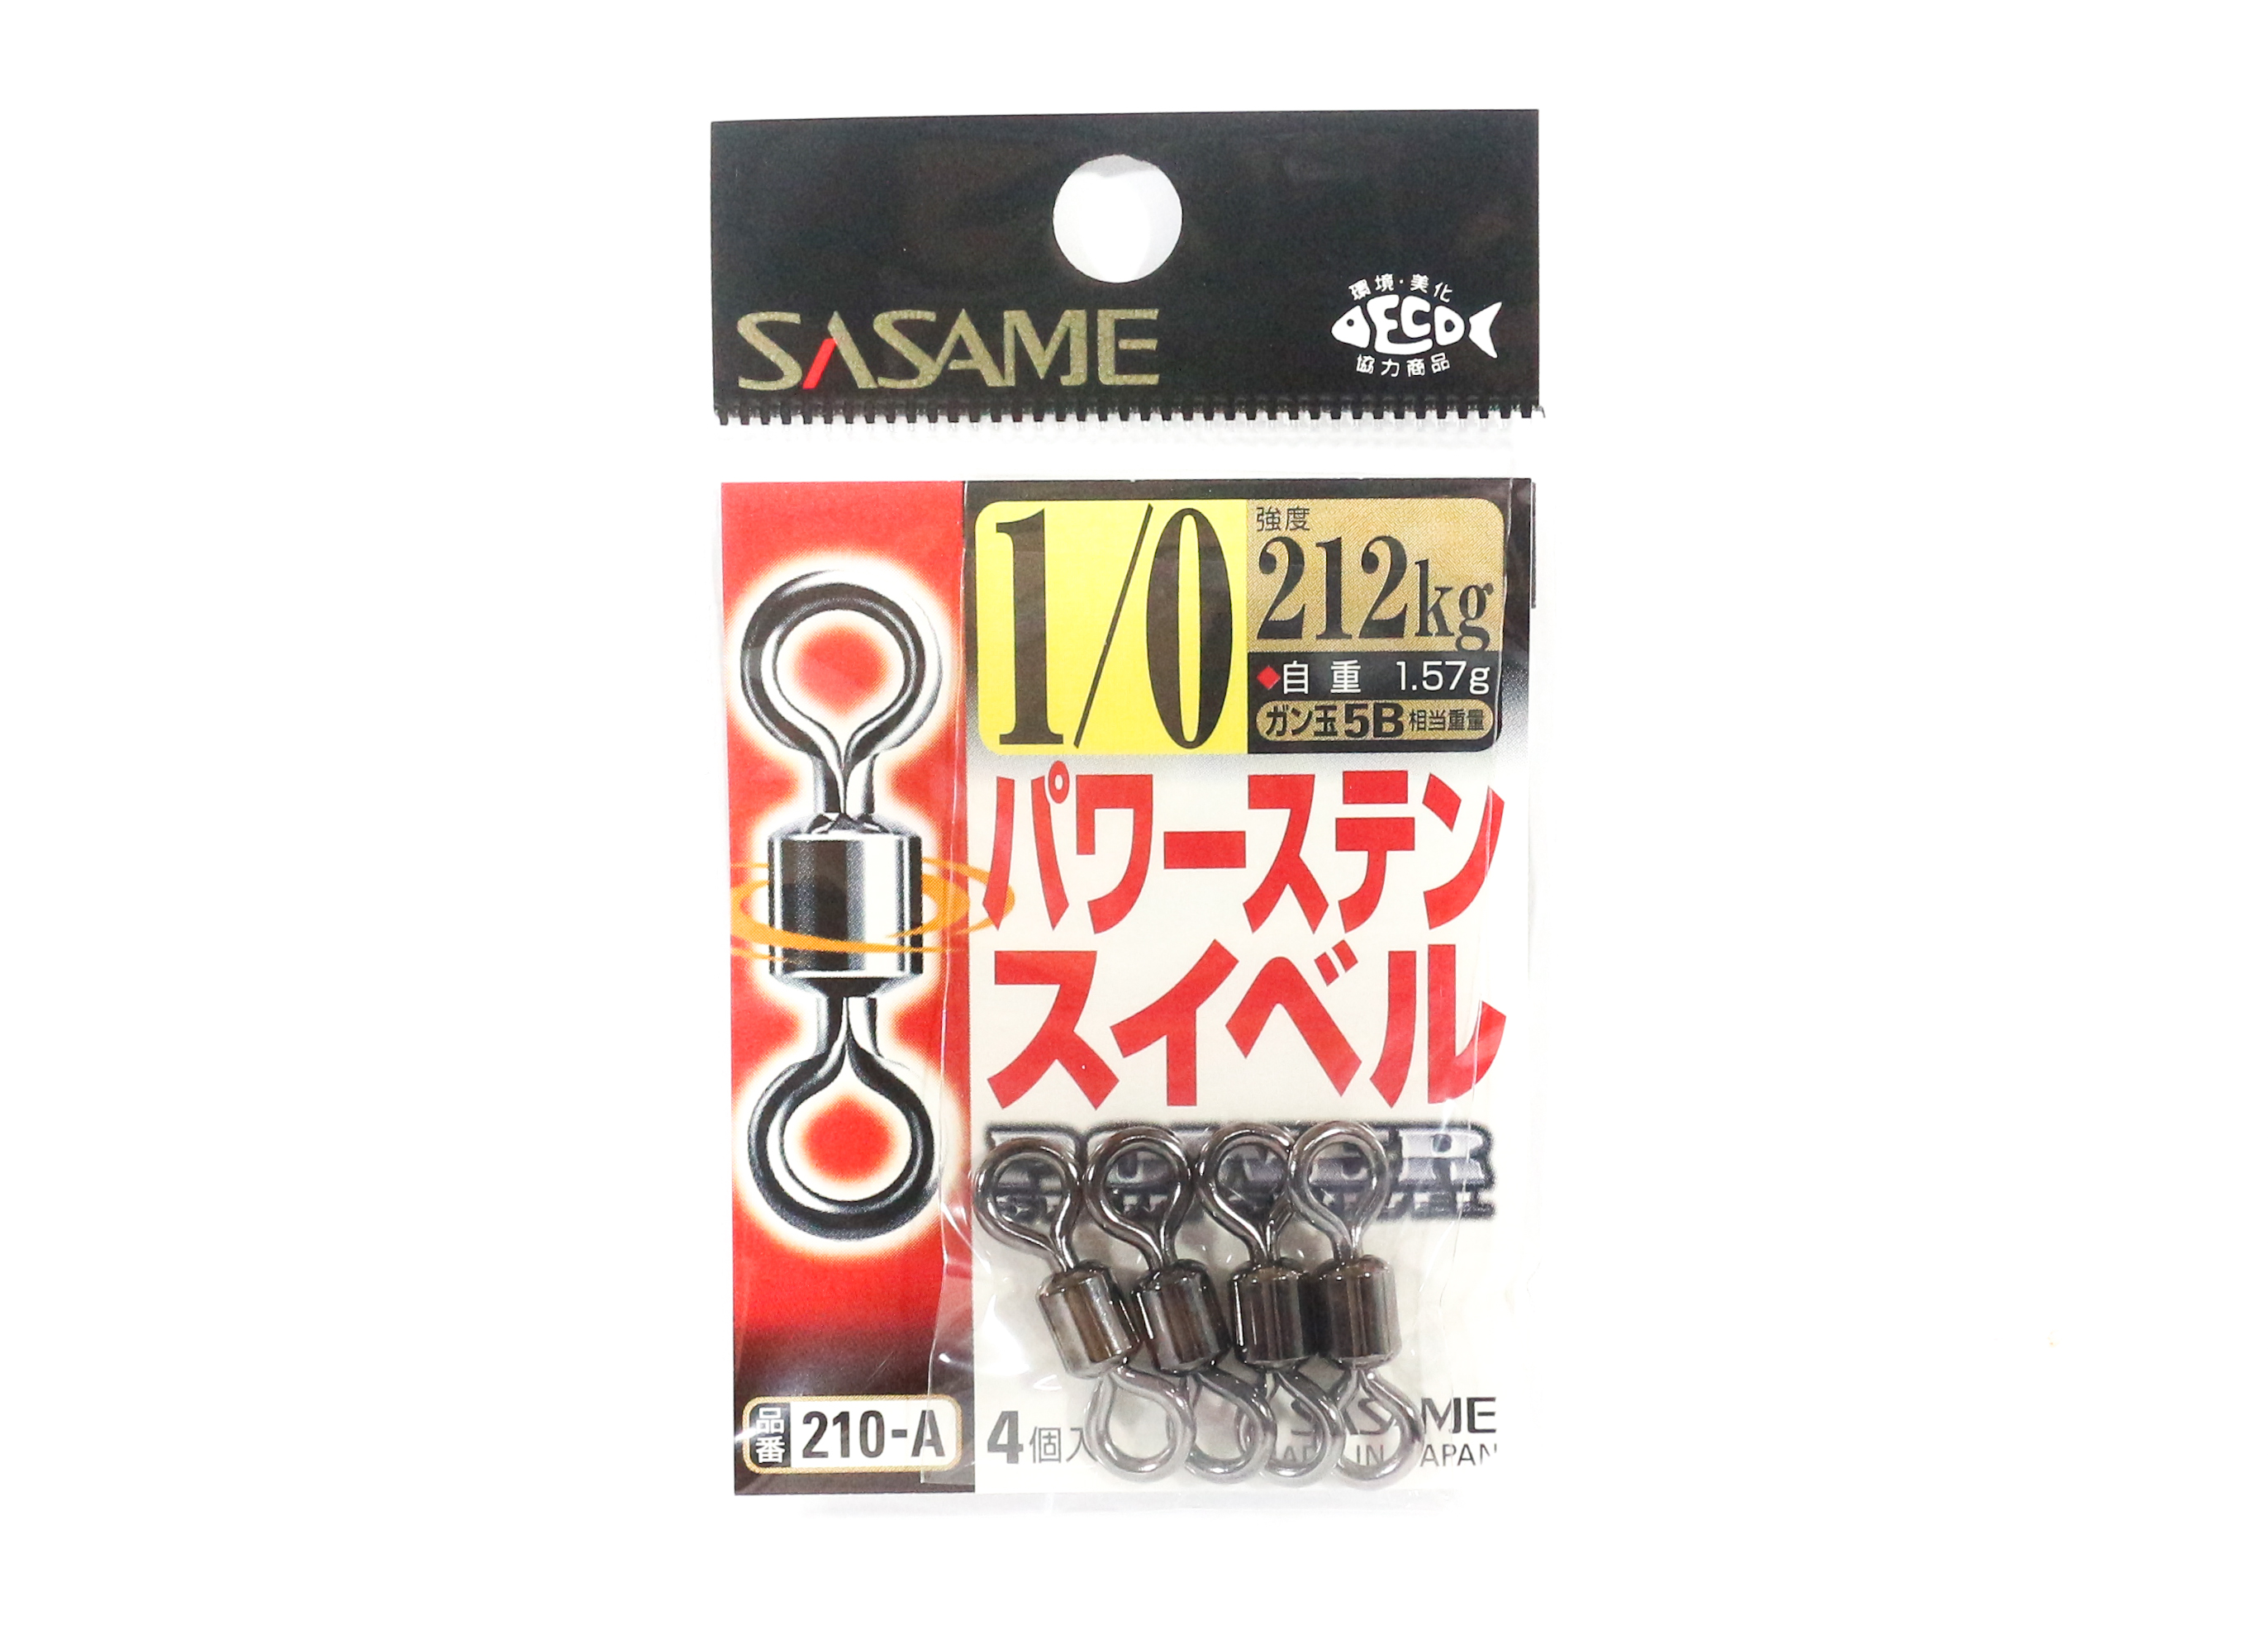 Sasame 210-A Power Stain Swivel Smooth Spin Black Size 1/0 (0907)